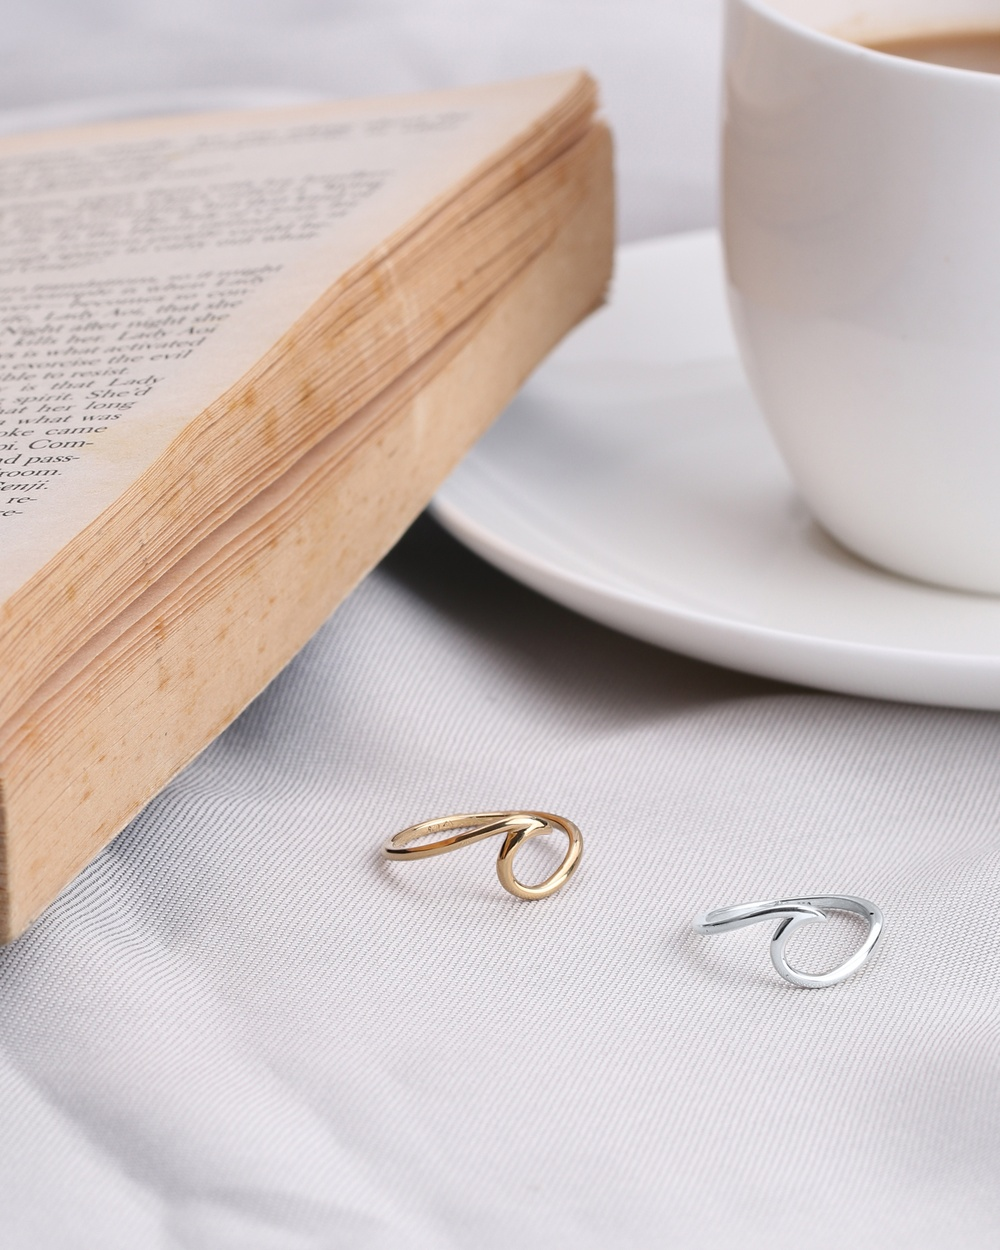 Elli Jewelry Ring Waves Wave Beach Maritime 925 Silver Gold Plated Jewellery Gold Gold-Plated